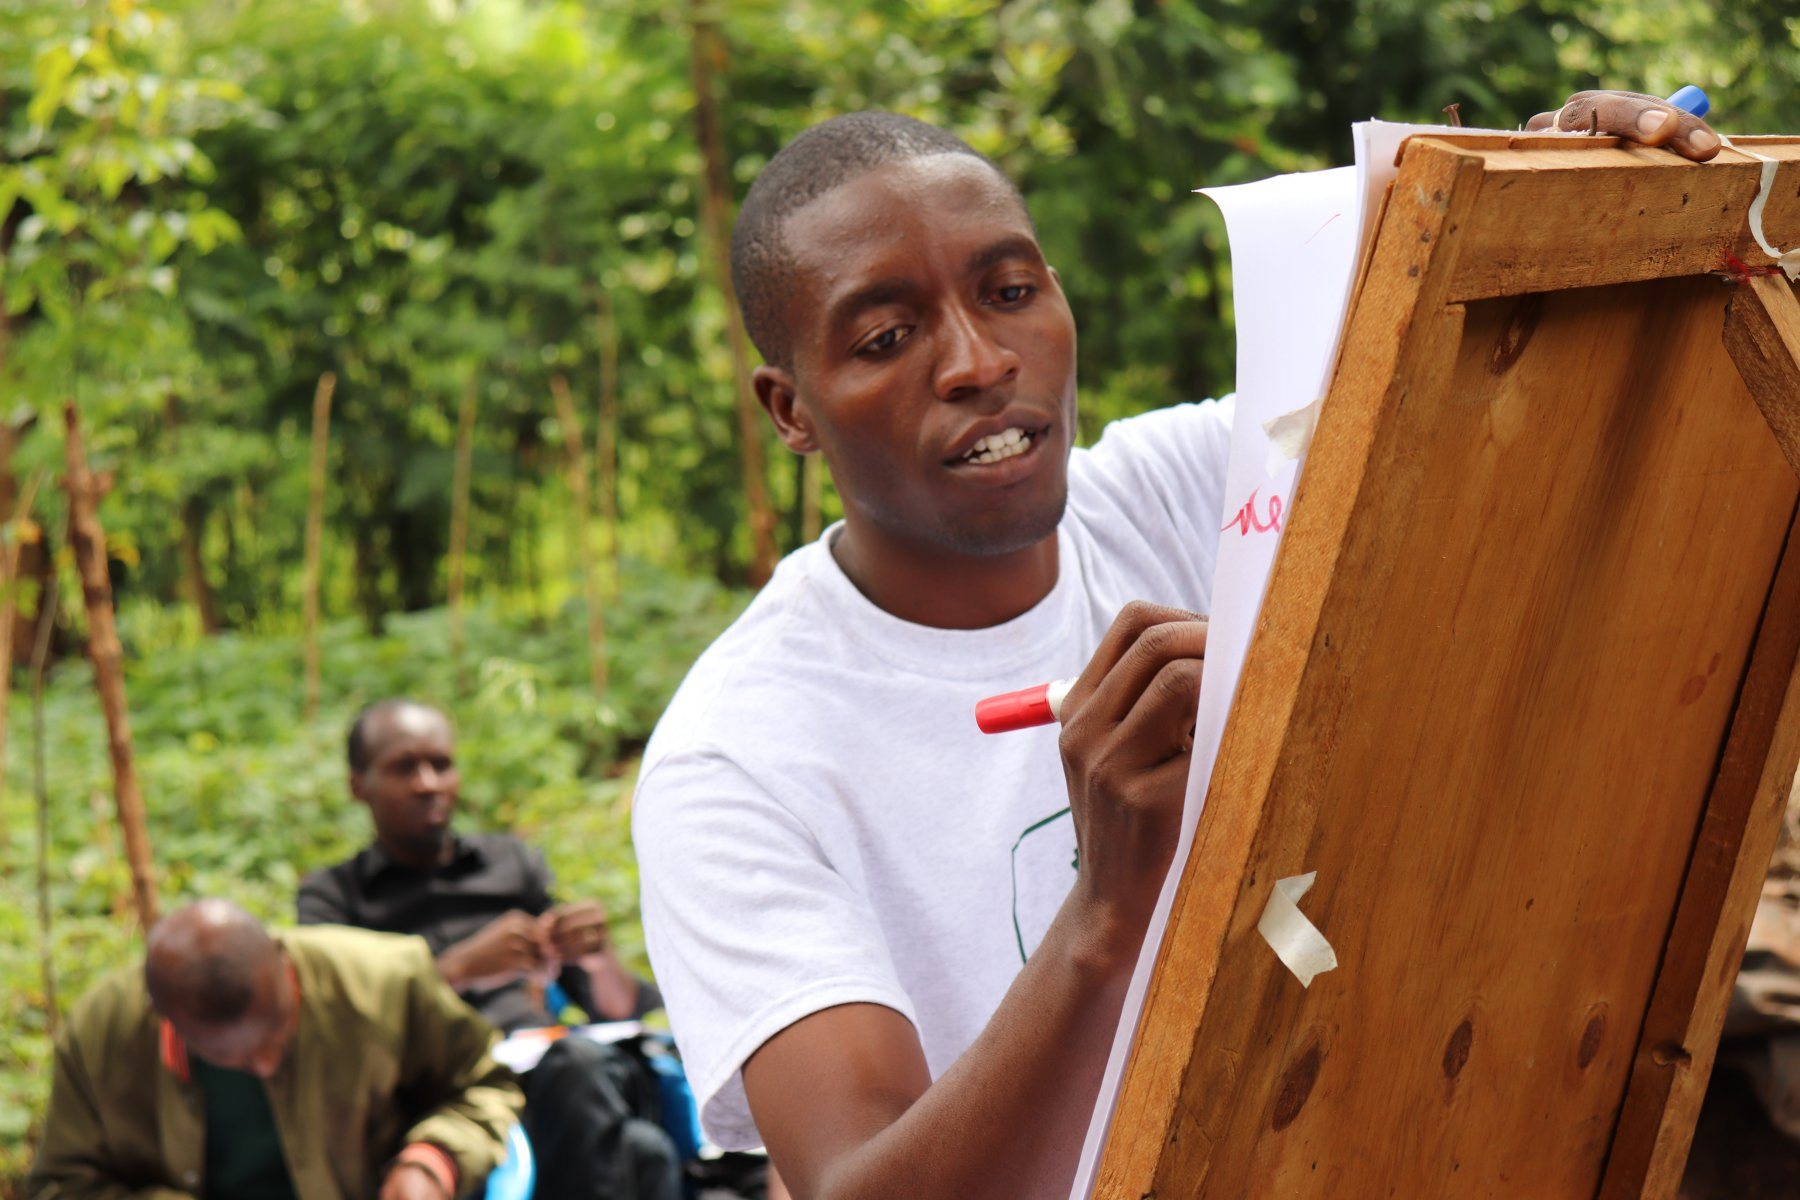 A man draws on an easel in an outdoor setting.